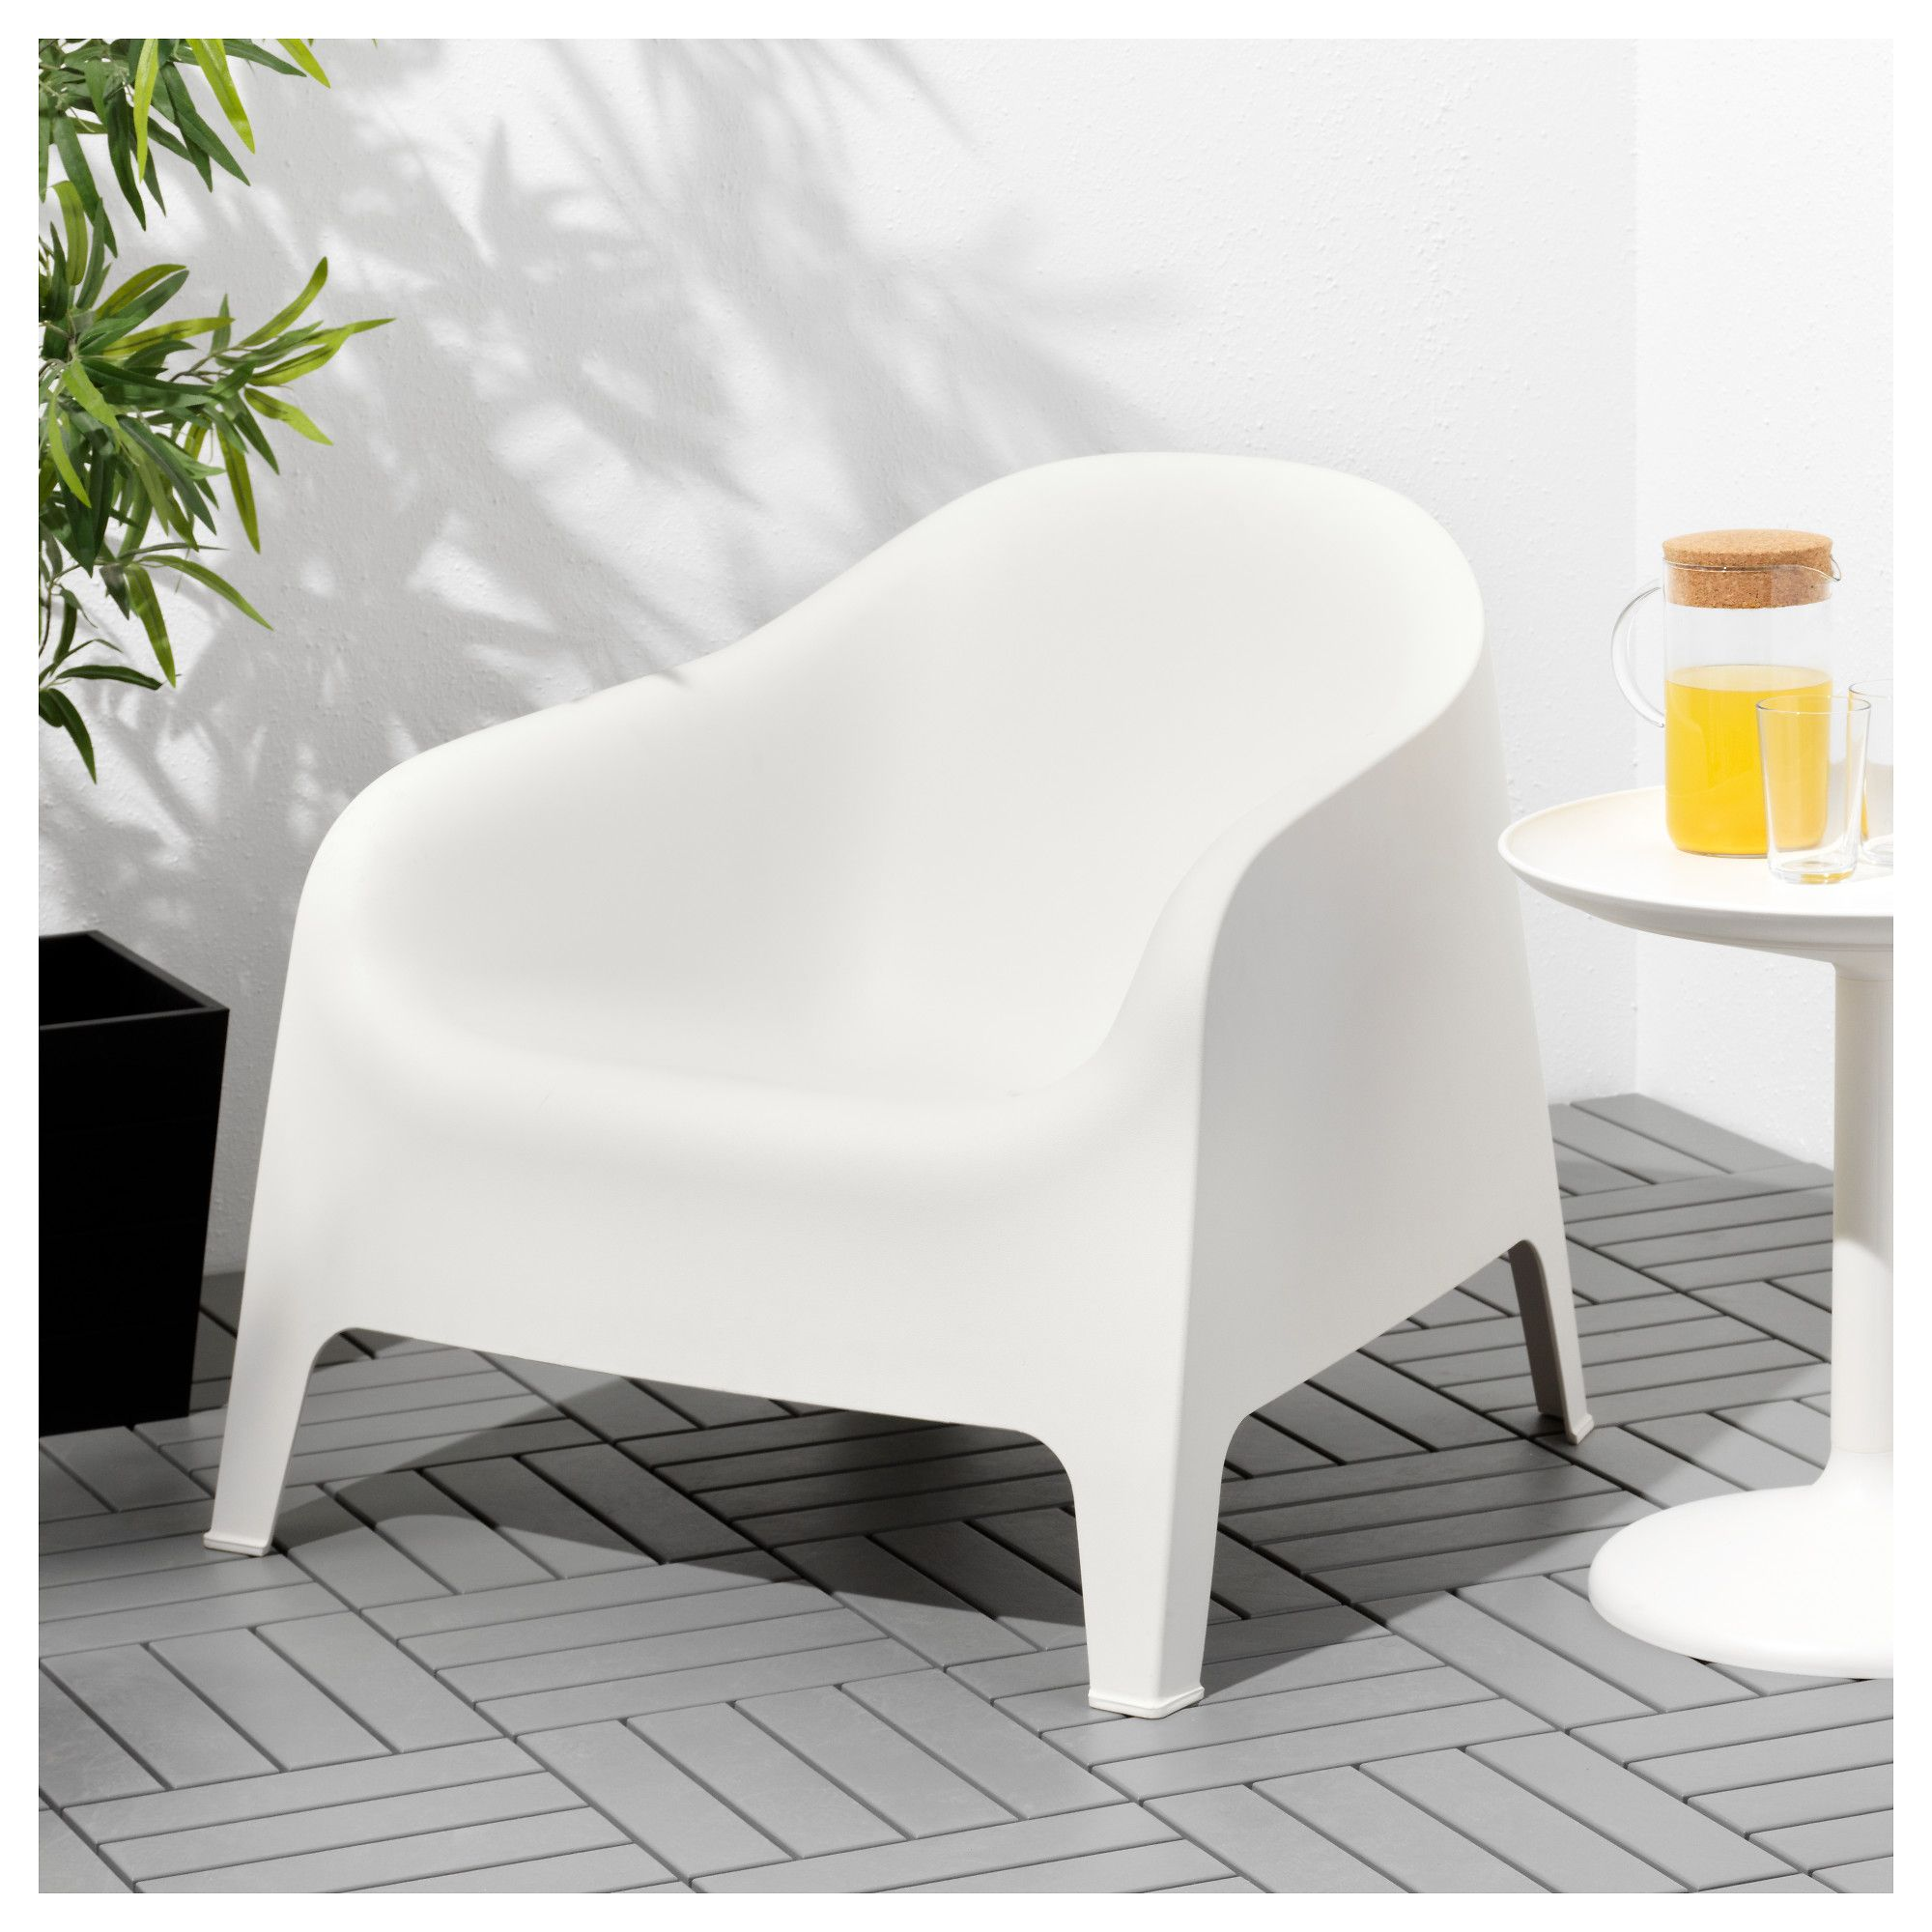 Phenomenal Ikea Skarpo Armchair Outdoor White Outside Art Andrewgaddart Wooden Chair Designs For Living Room Andrewgaddartcom